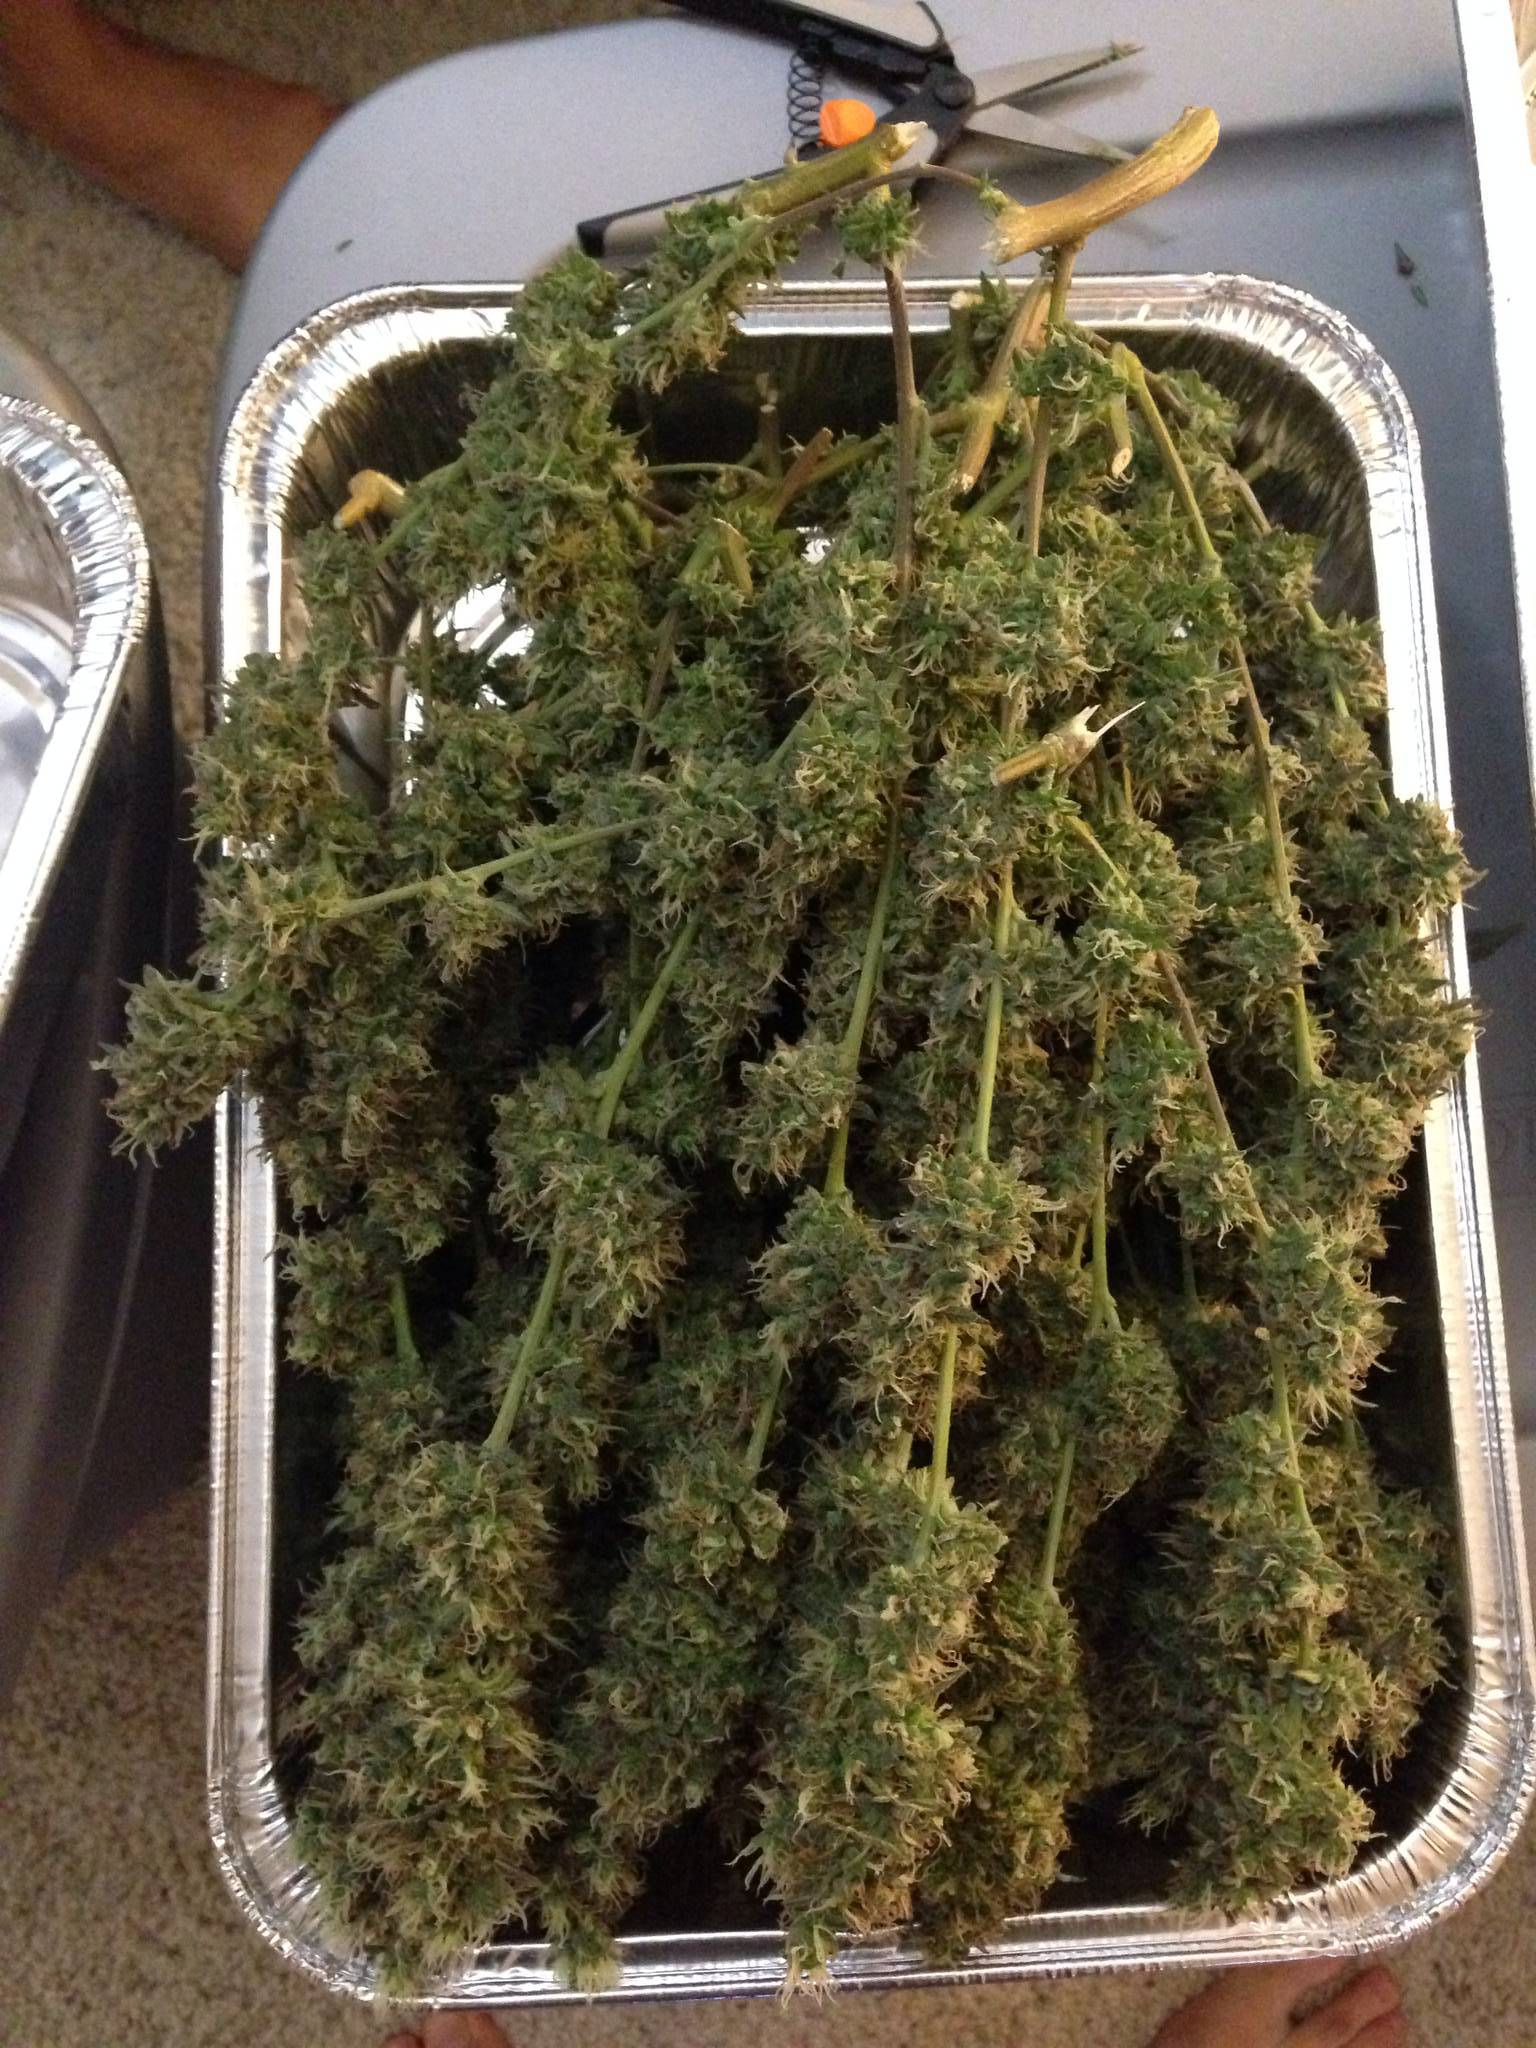 Buds are hanging on hangers in my grow tent with the carbon filter on and fans still running but not blowing in buds. Any advice on drying would be ... & Harvest Completed! *Pics* - Cannabis Cultivation - Growery Message ...